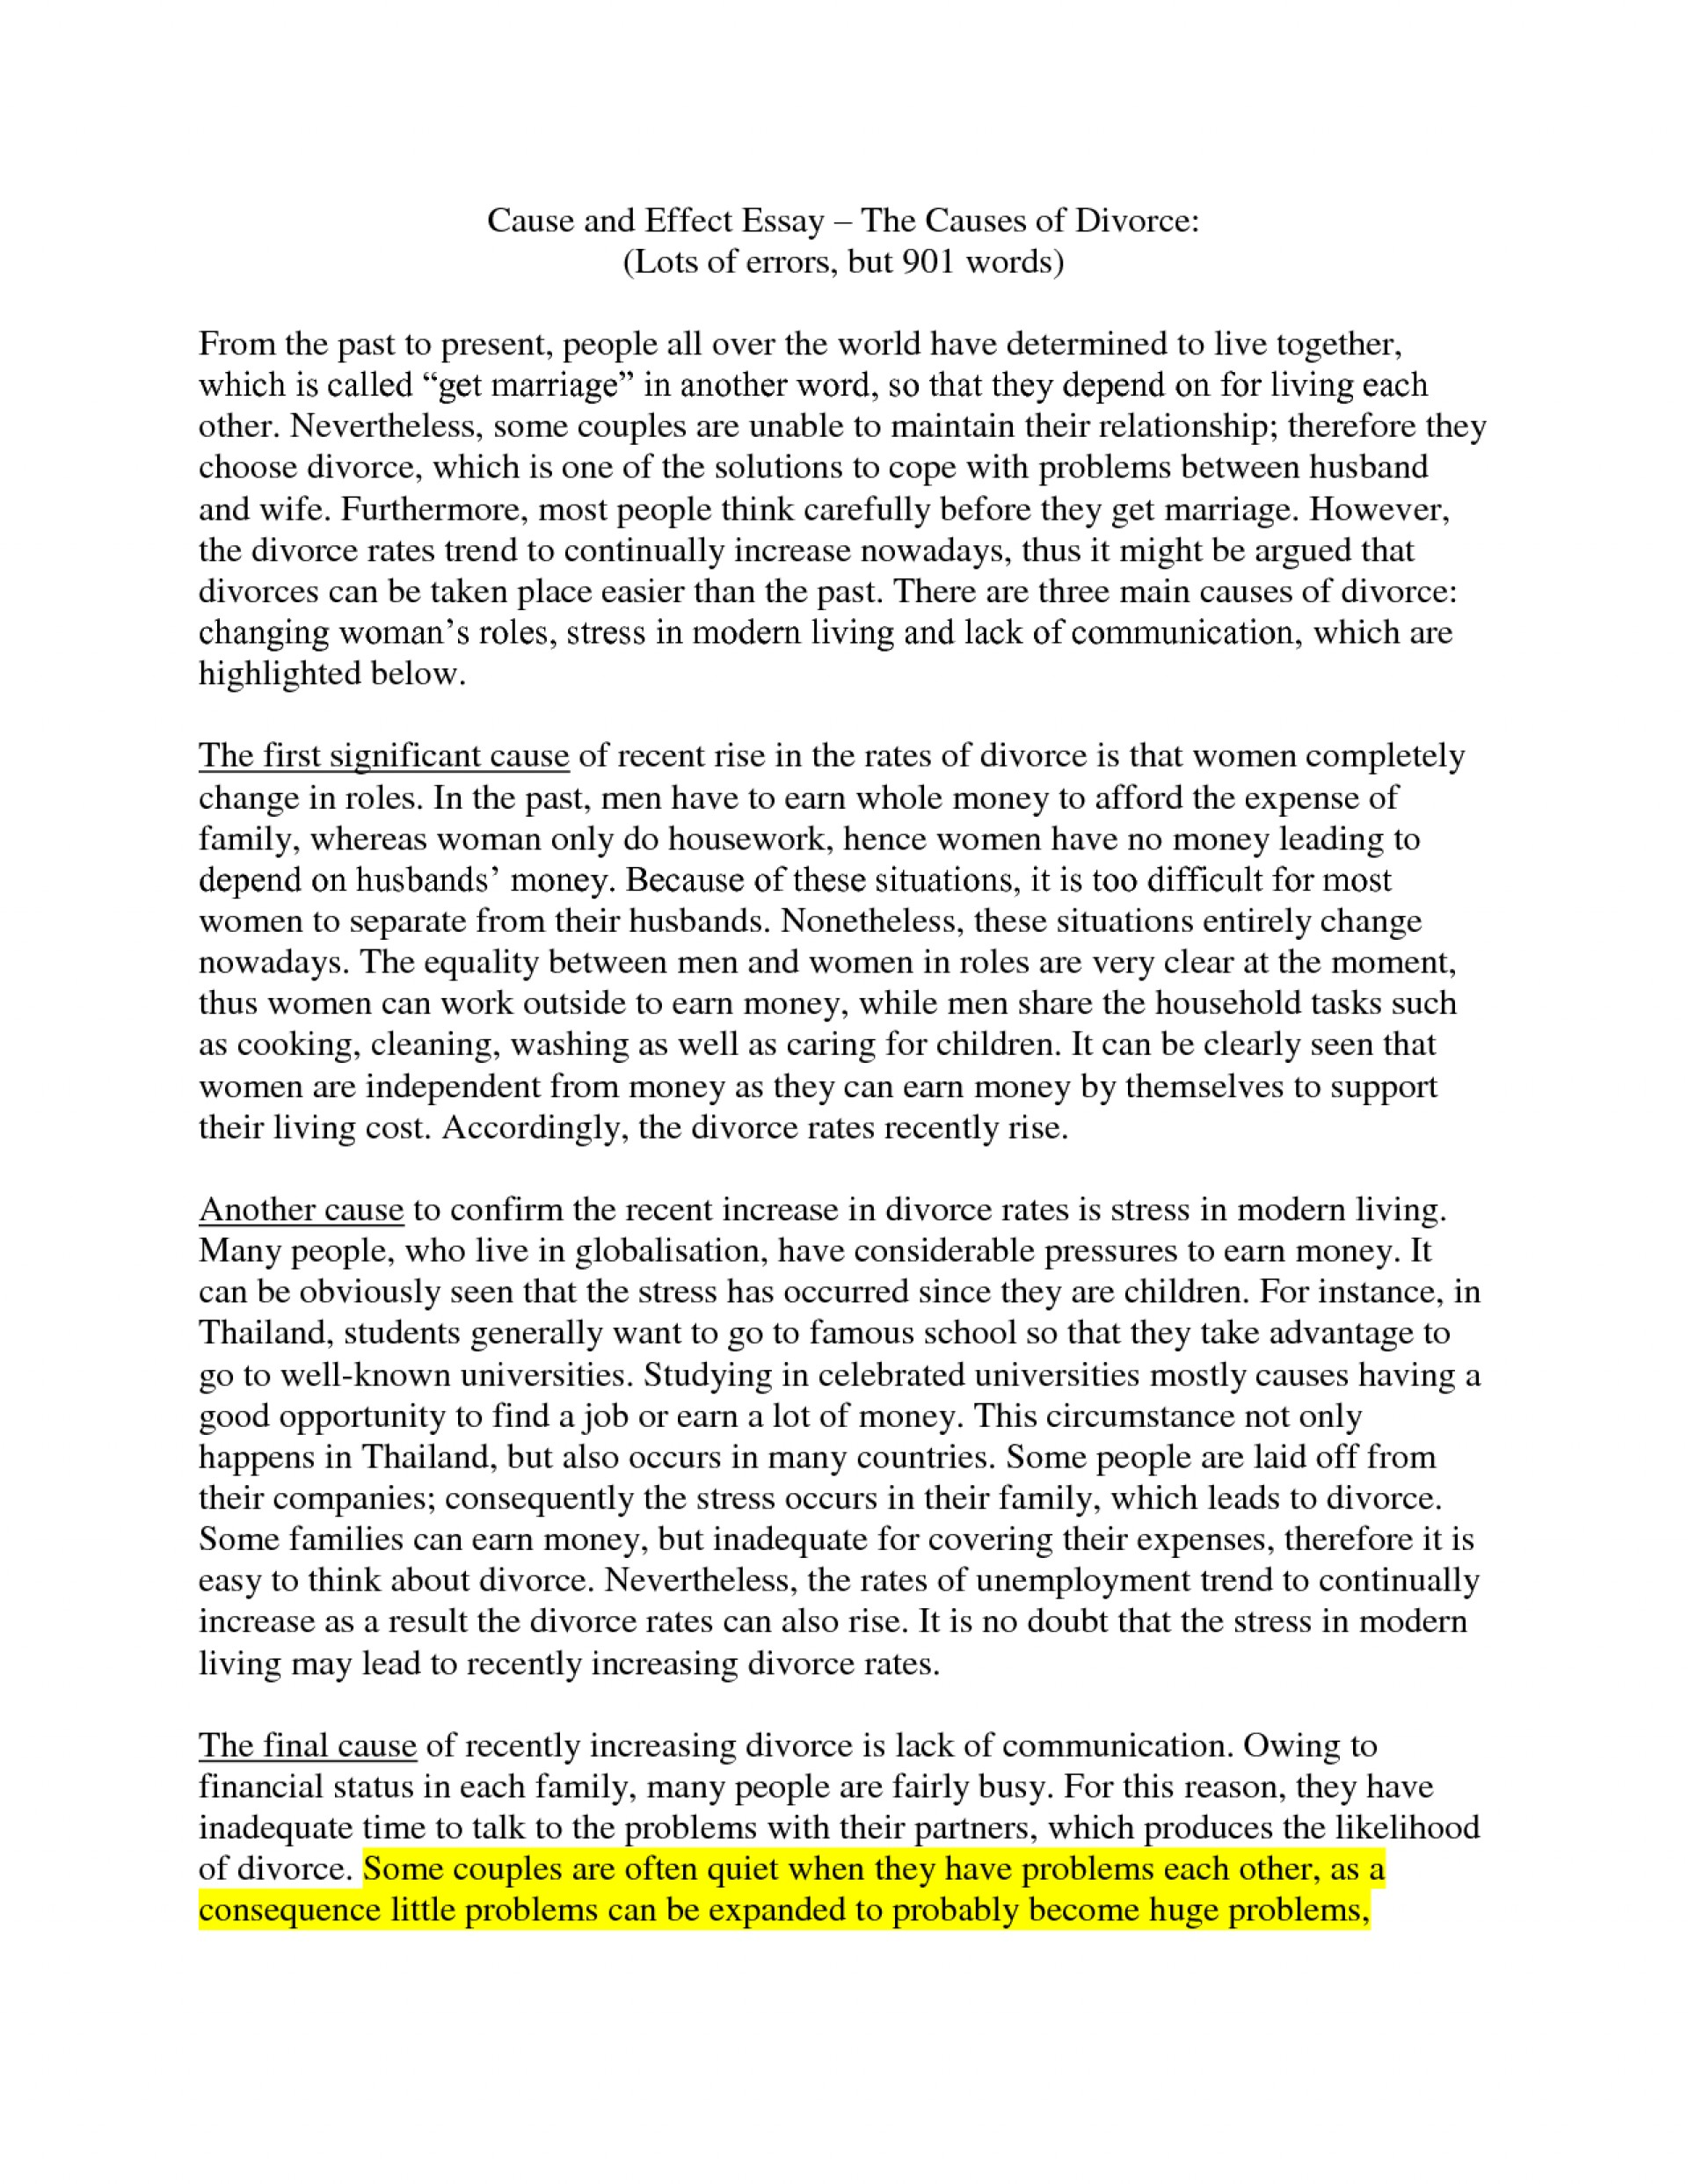 008 How To Start Cause And Effect Essay Brilliant Ideas Of Write Ethics Fabulous The Causes Effectsg Awful A Examples Step By Powerpoint Pdf 1920